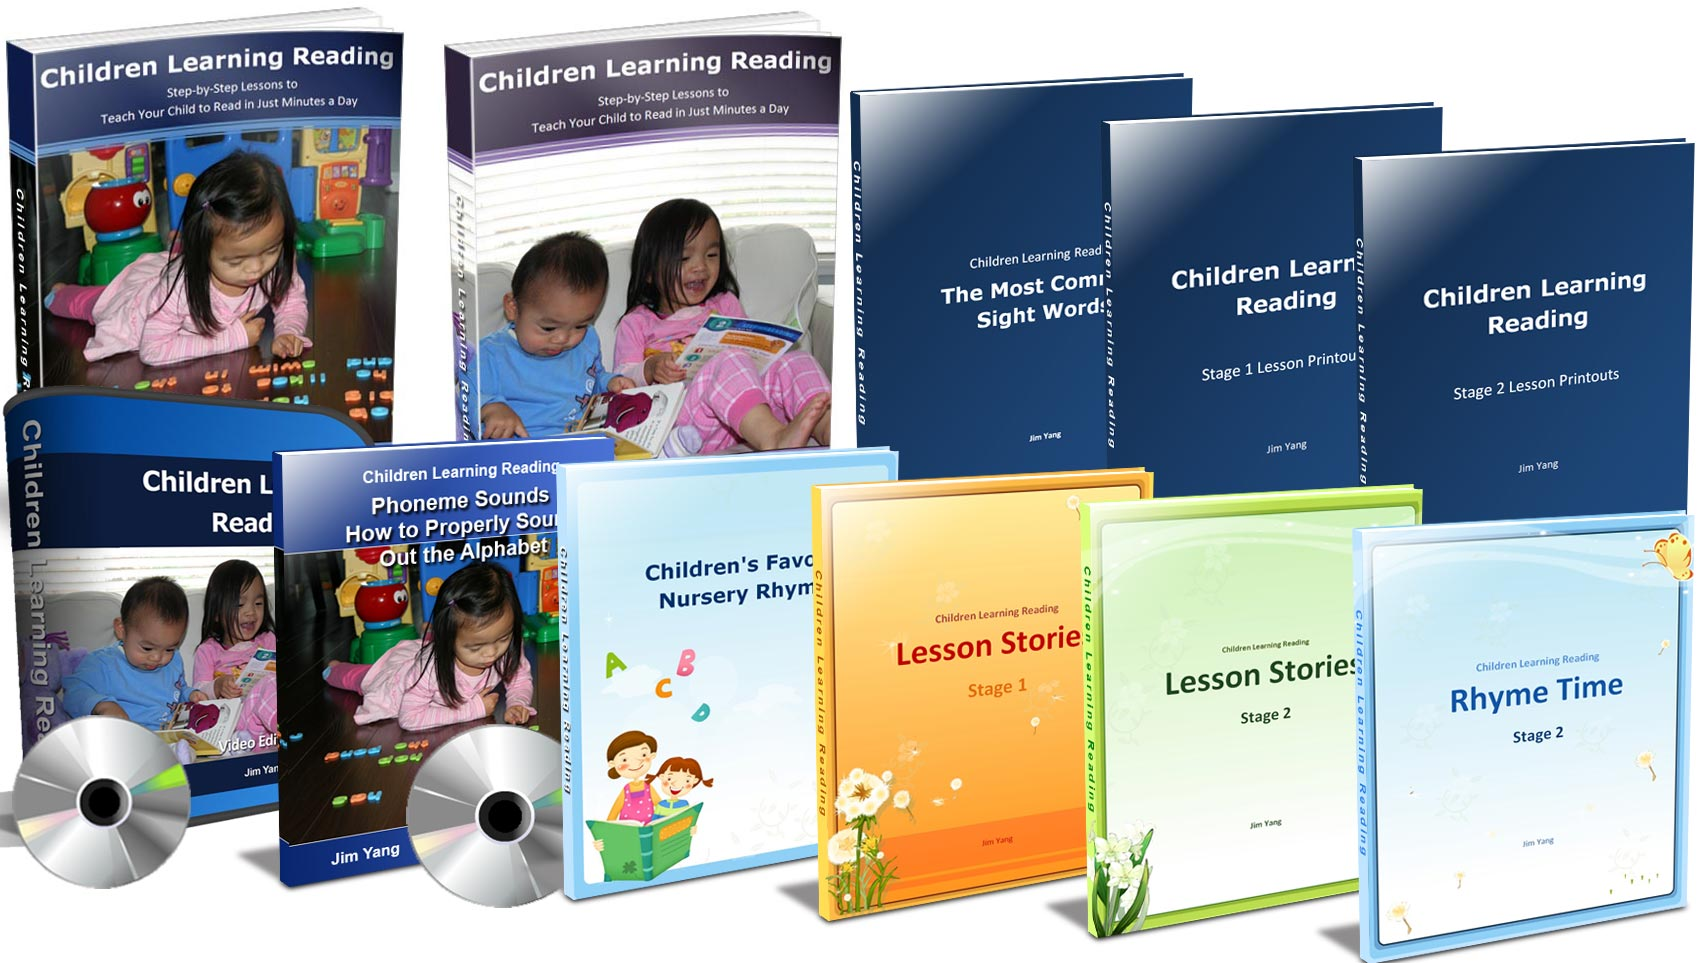 Children Learning Reading Review, Childrenlearningreadingreview,  Children Learning Reading